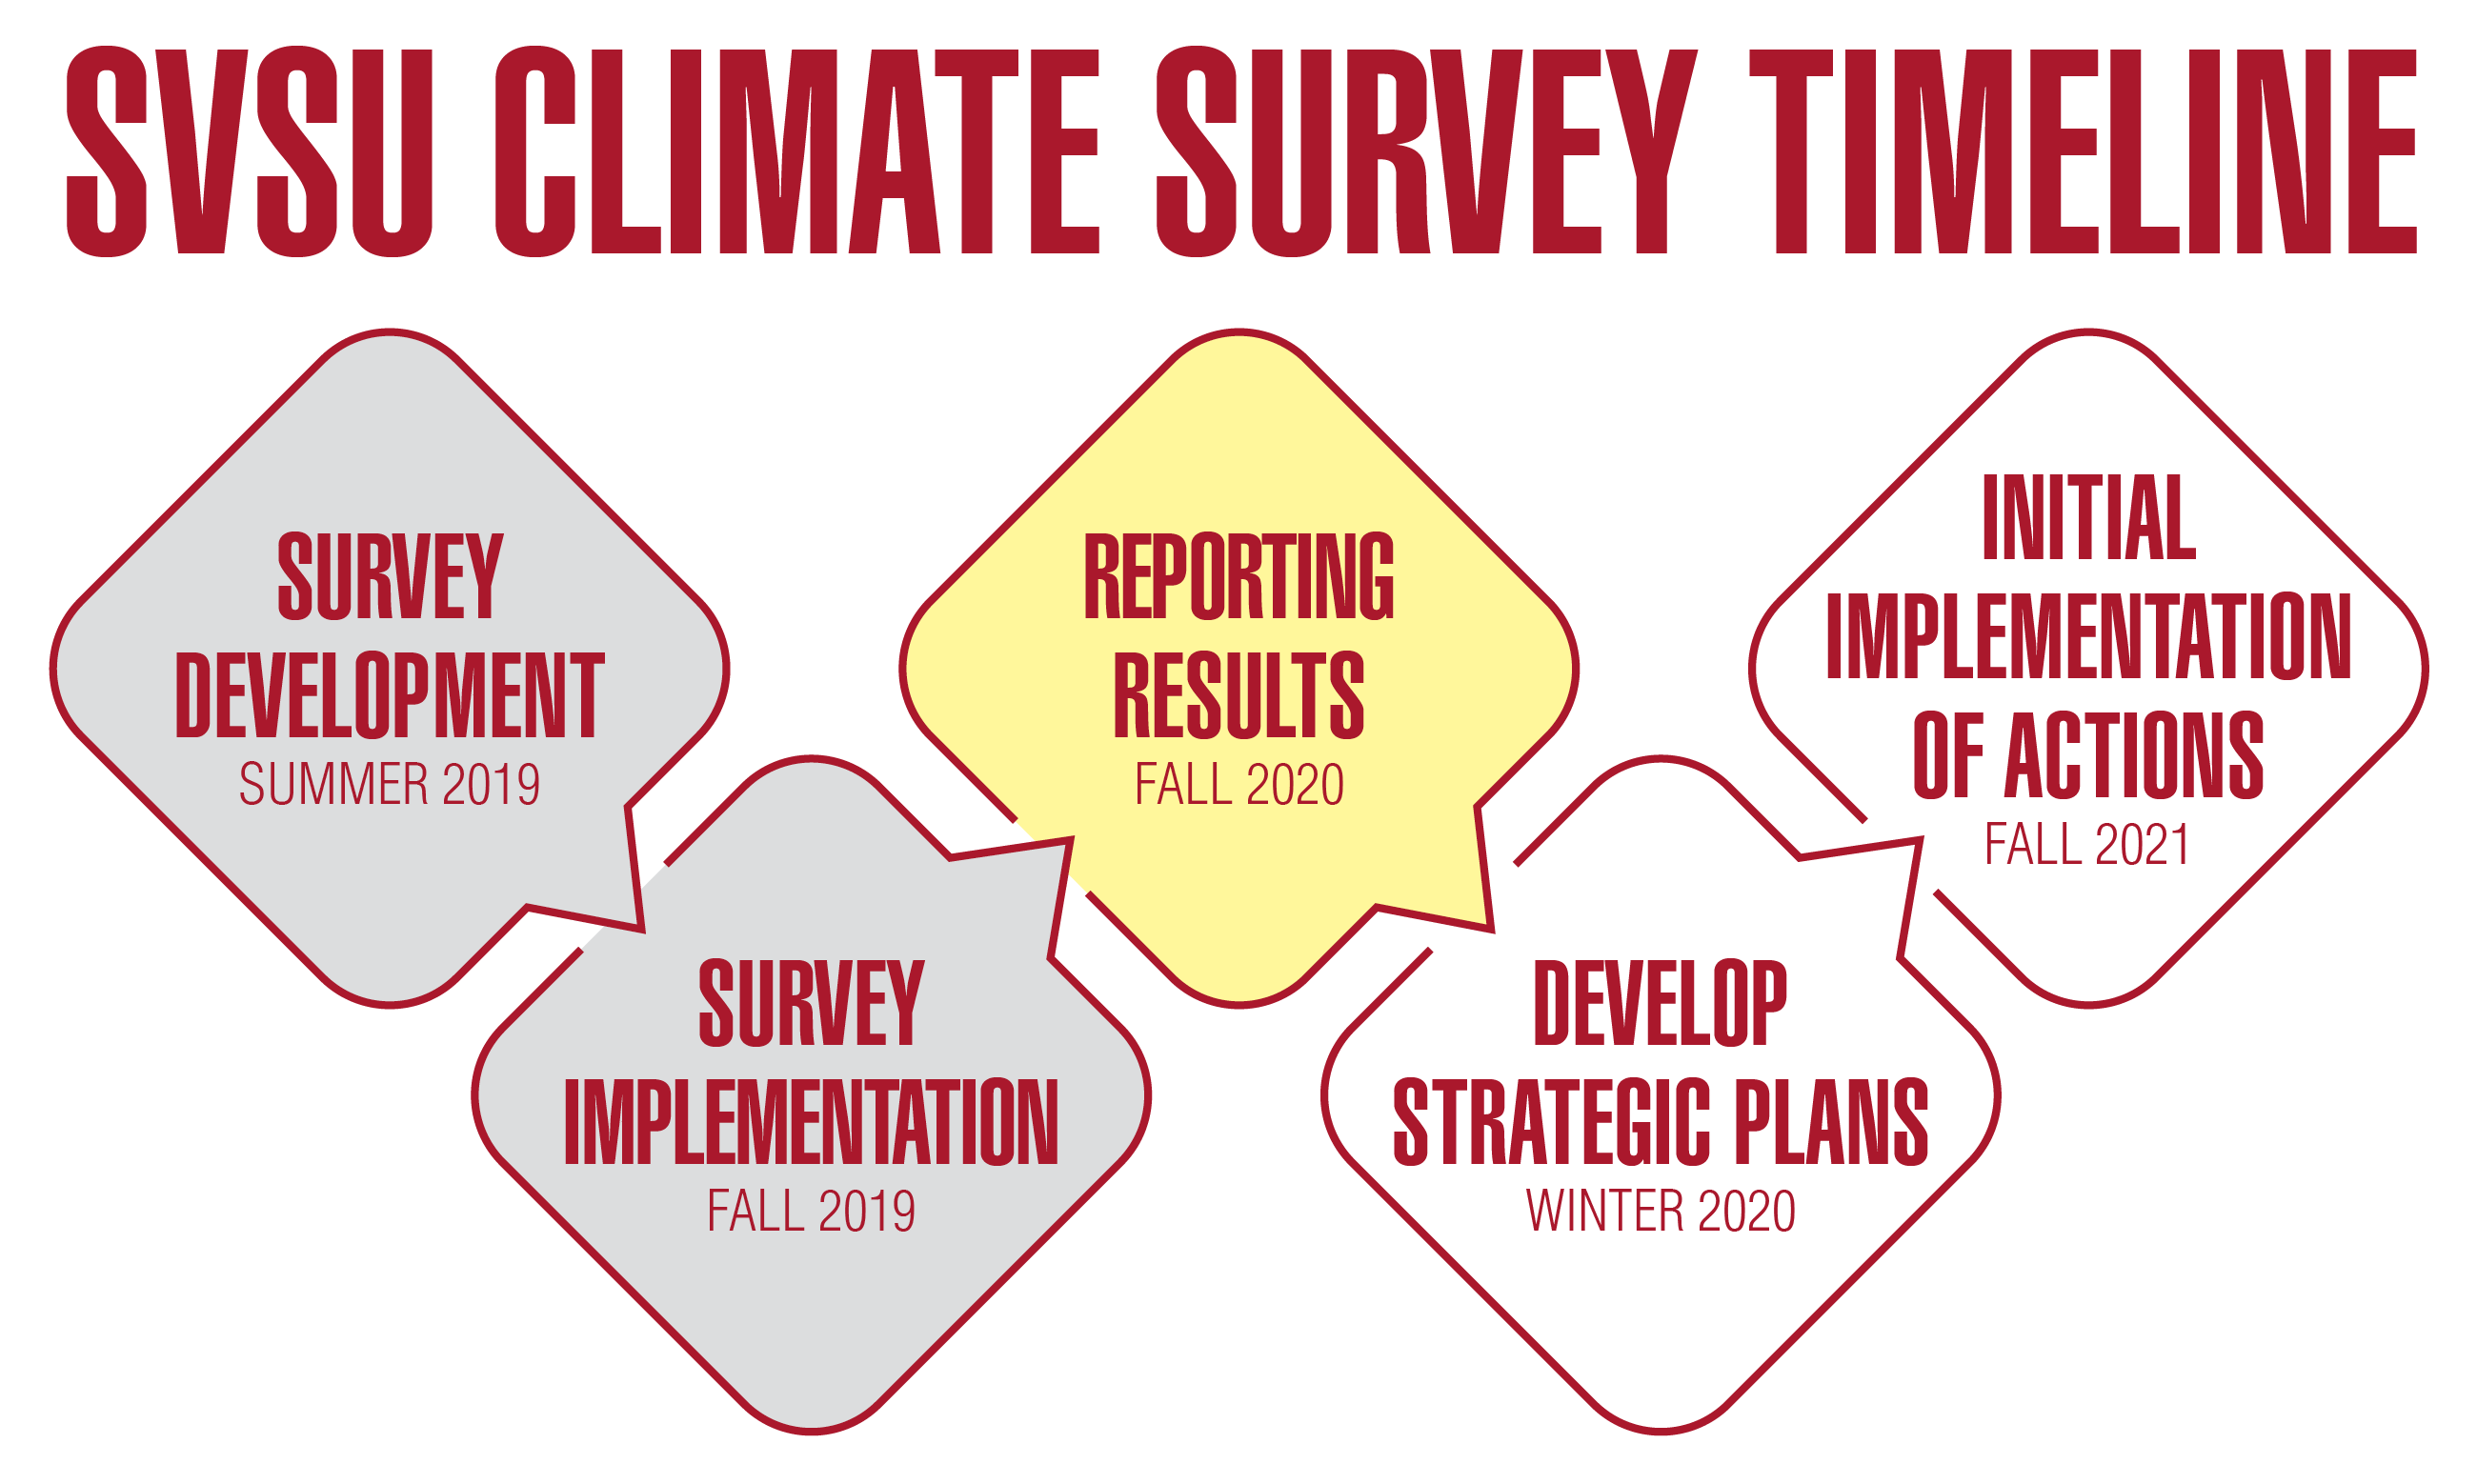 Climate Survey Timeline, square 1 - survey development summer 2019, square 2 - implementation fall 2019, square 3 - results fall 2020, square 4 - strategic plans winter 2020, square 5 - plan implementation fall 2021